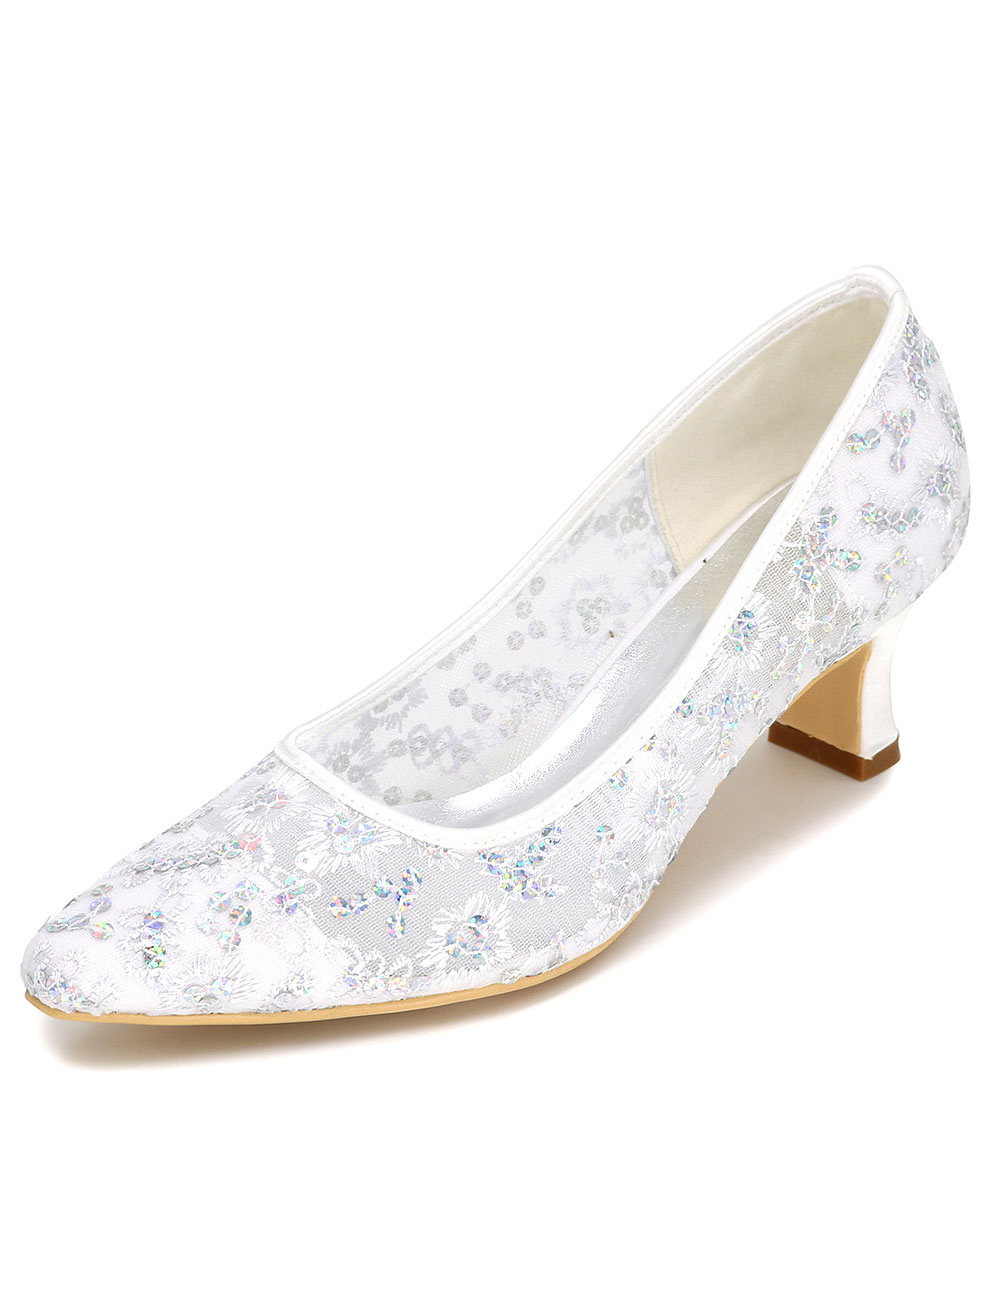 White Wedding Shoes High Heel Lace Beaded Embroidered Bridal Shoes